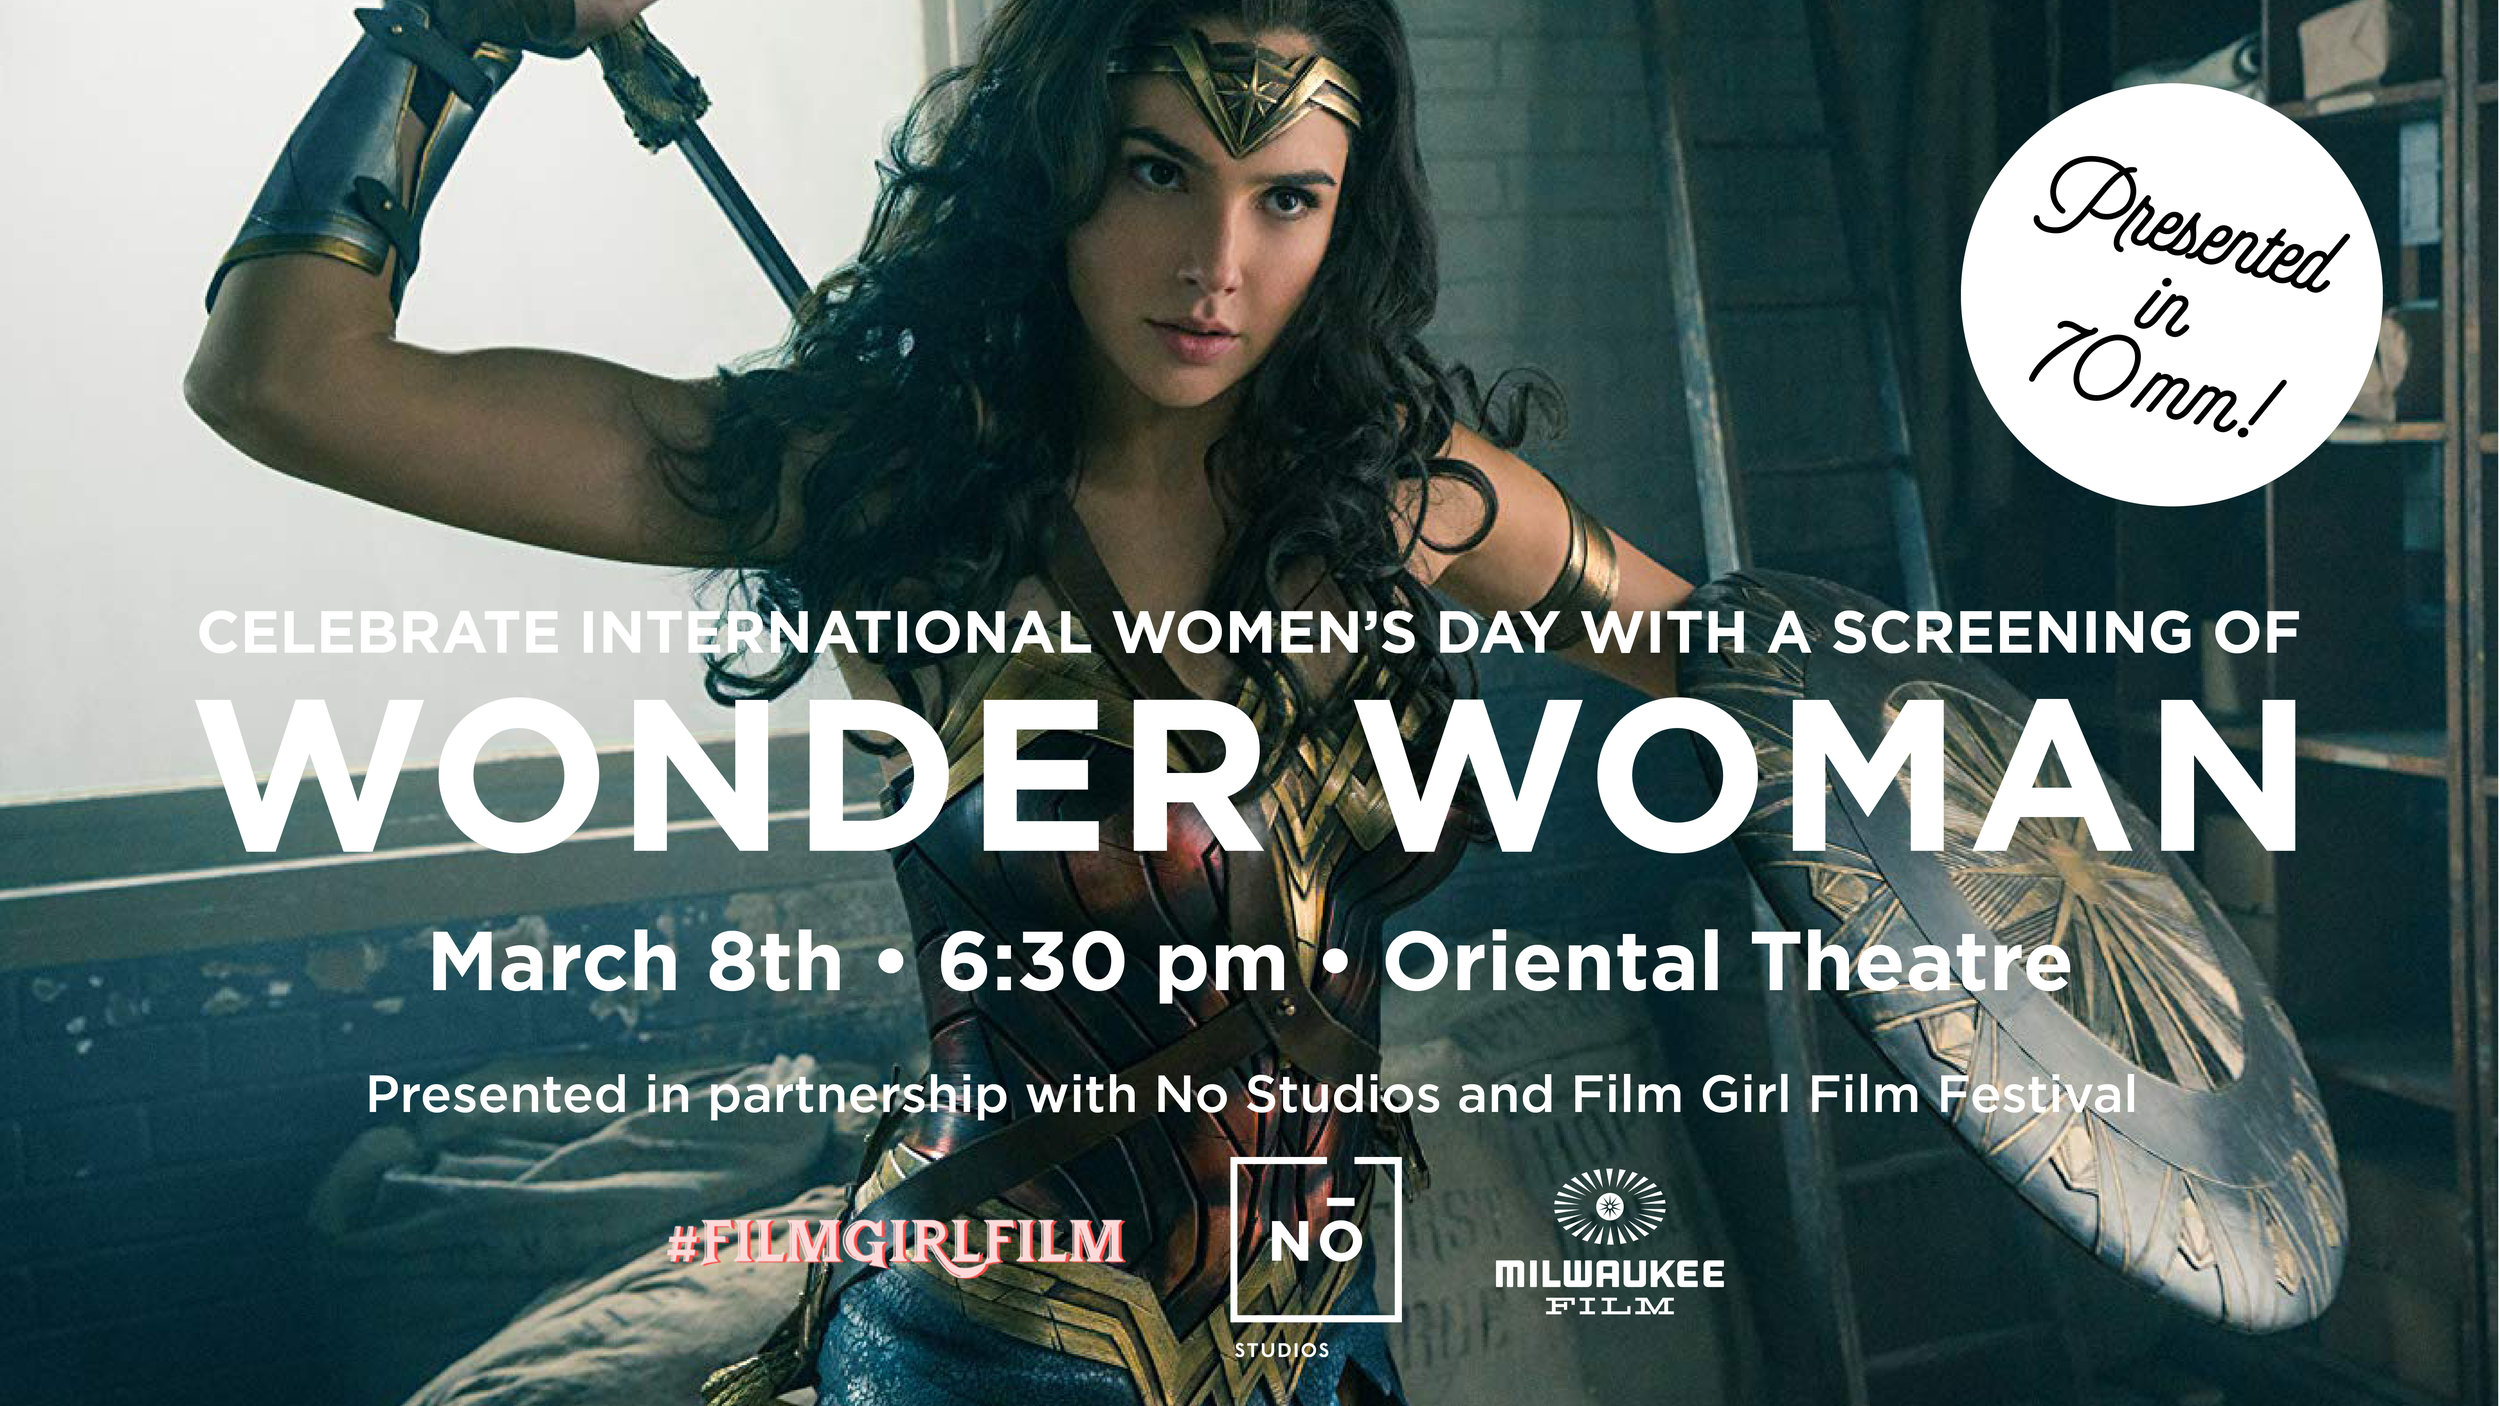 Wonder Woman Event Poster.jpg